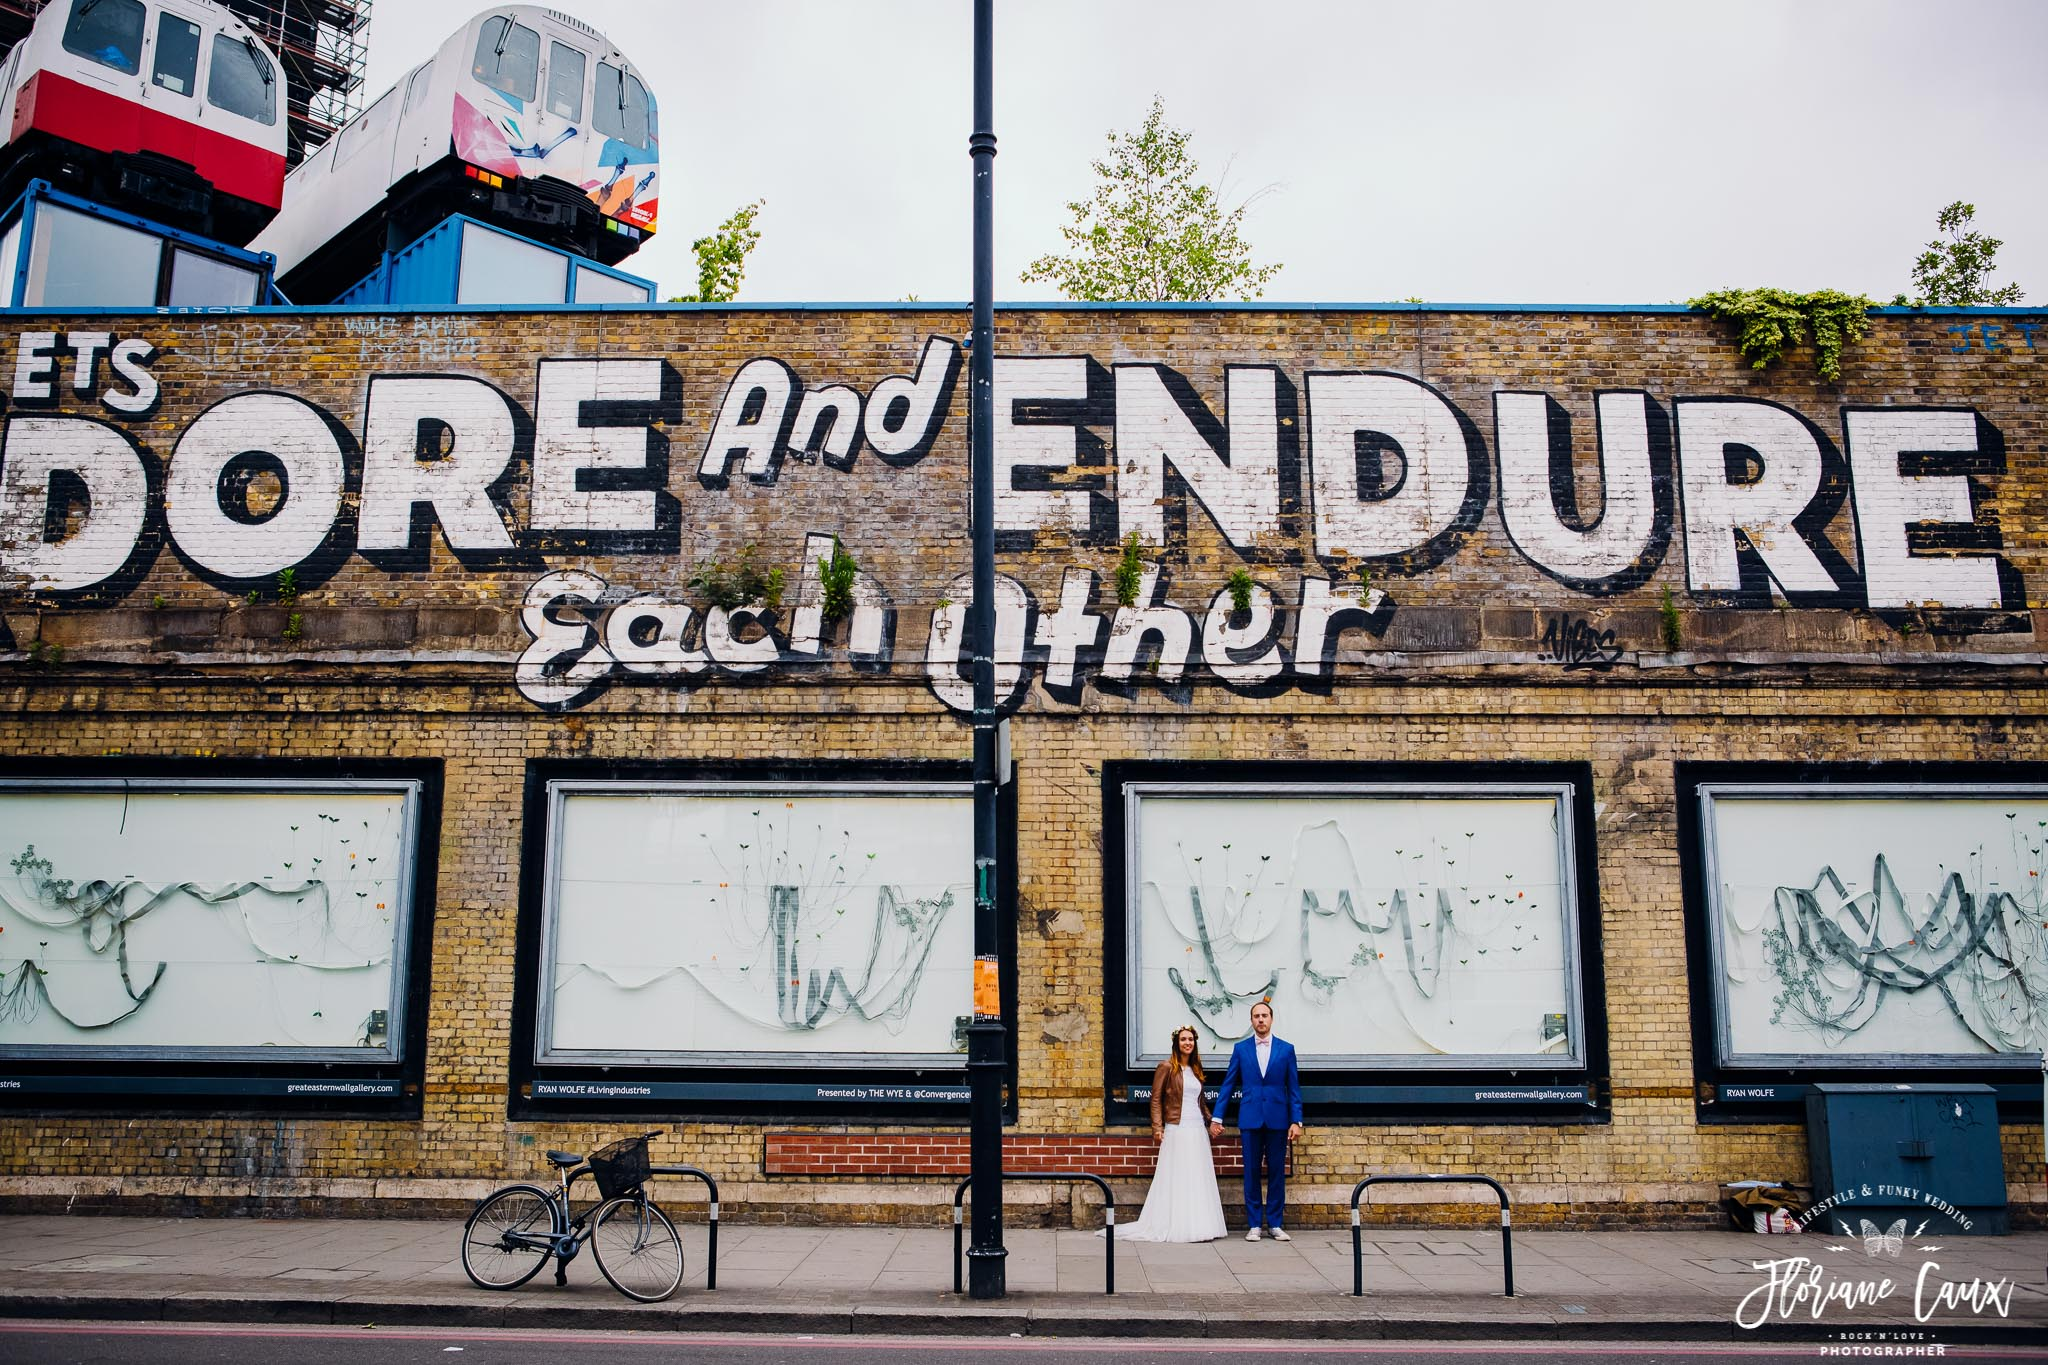 wedding in London shoreditch best photographer Floriane Caux